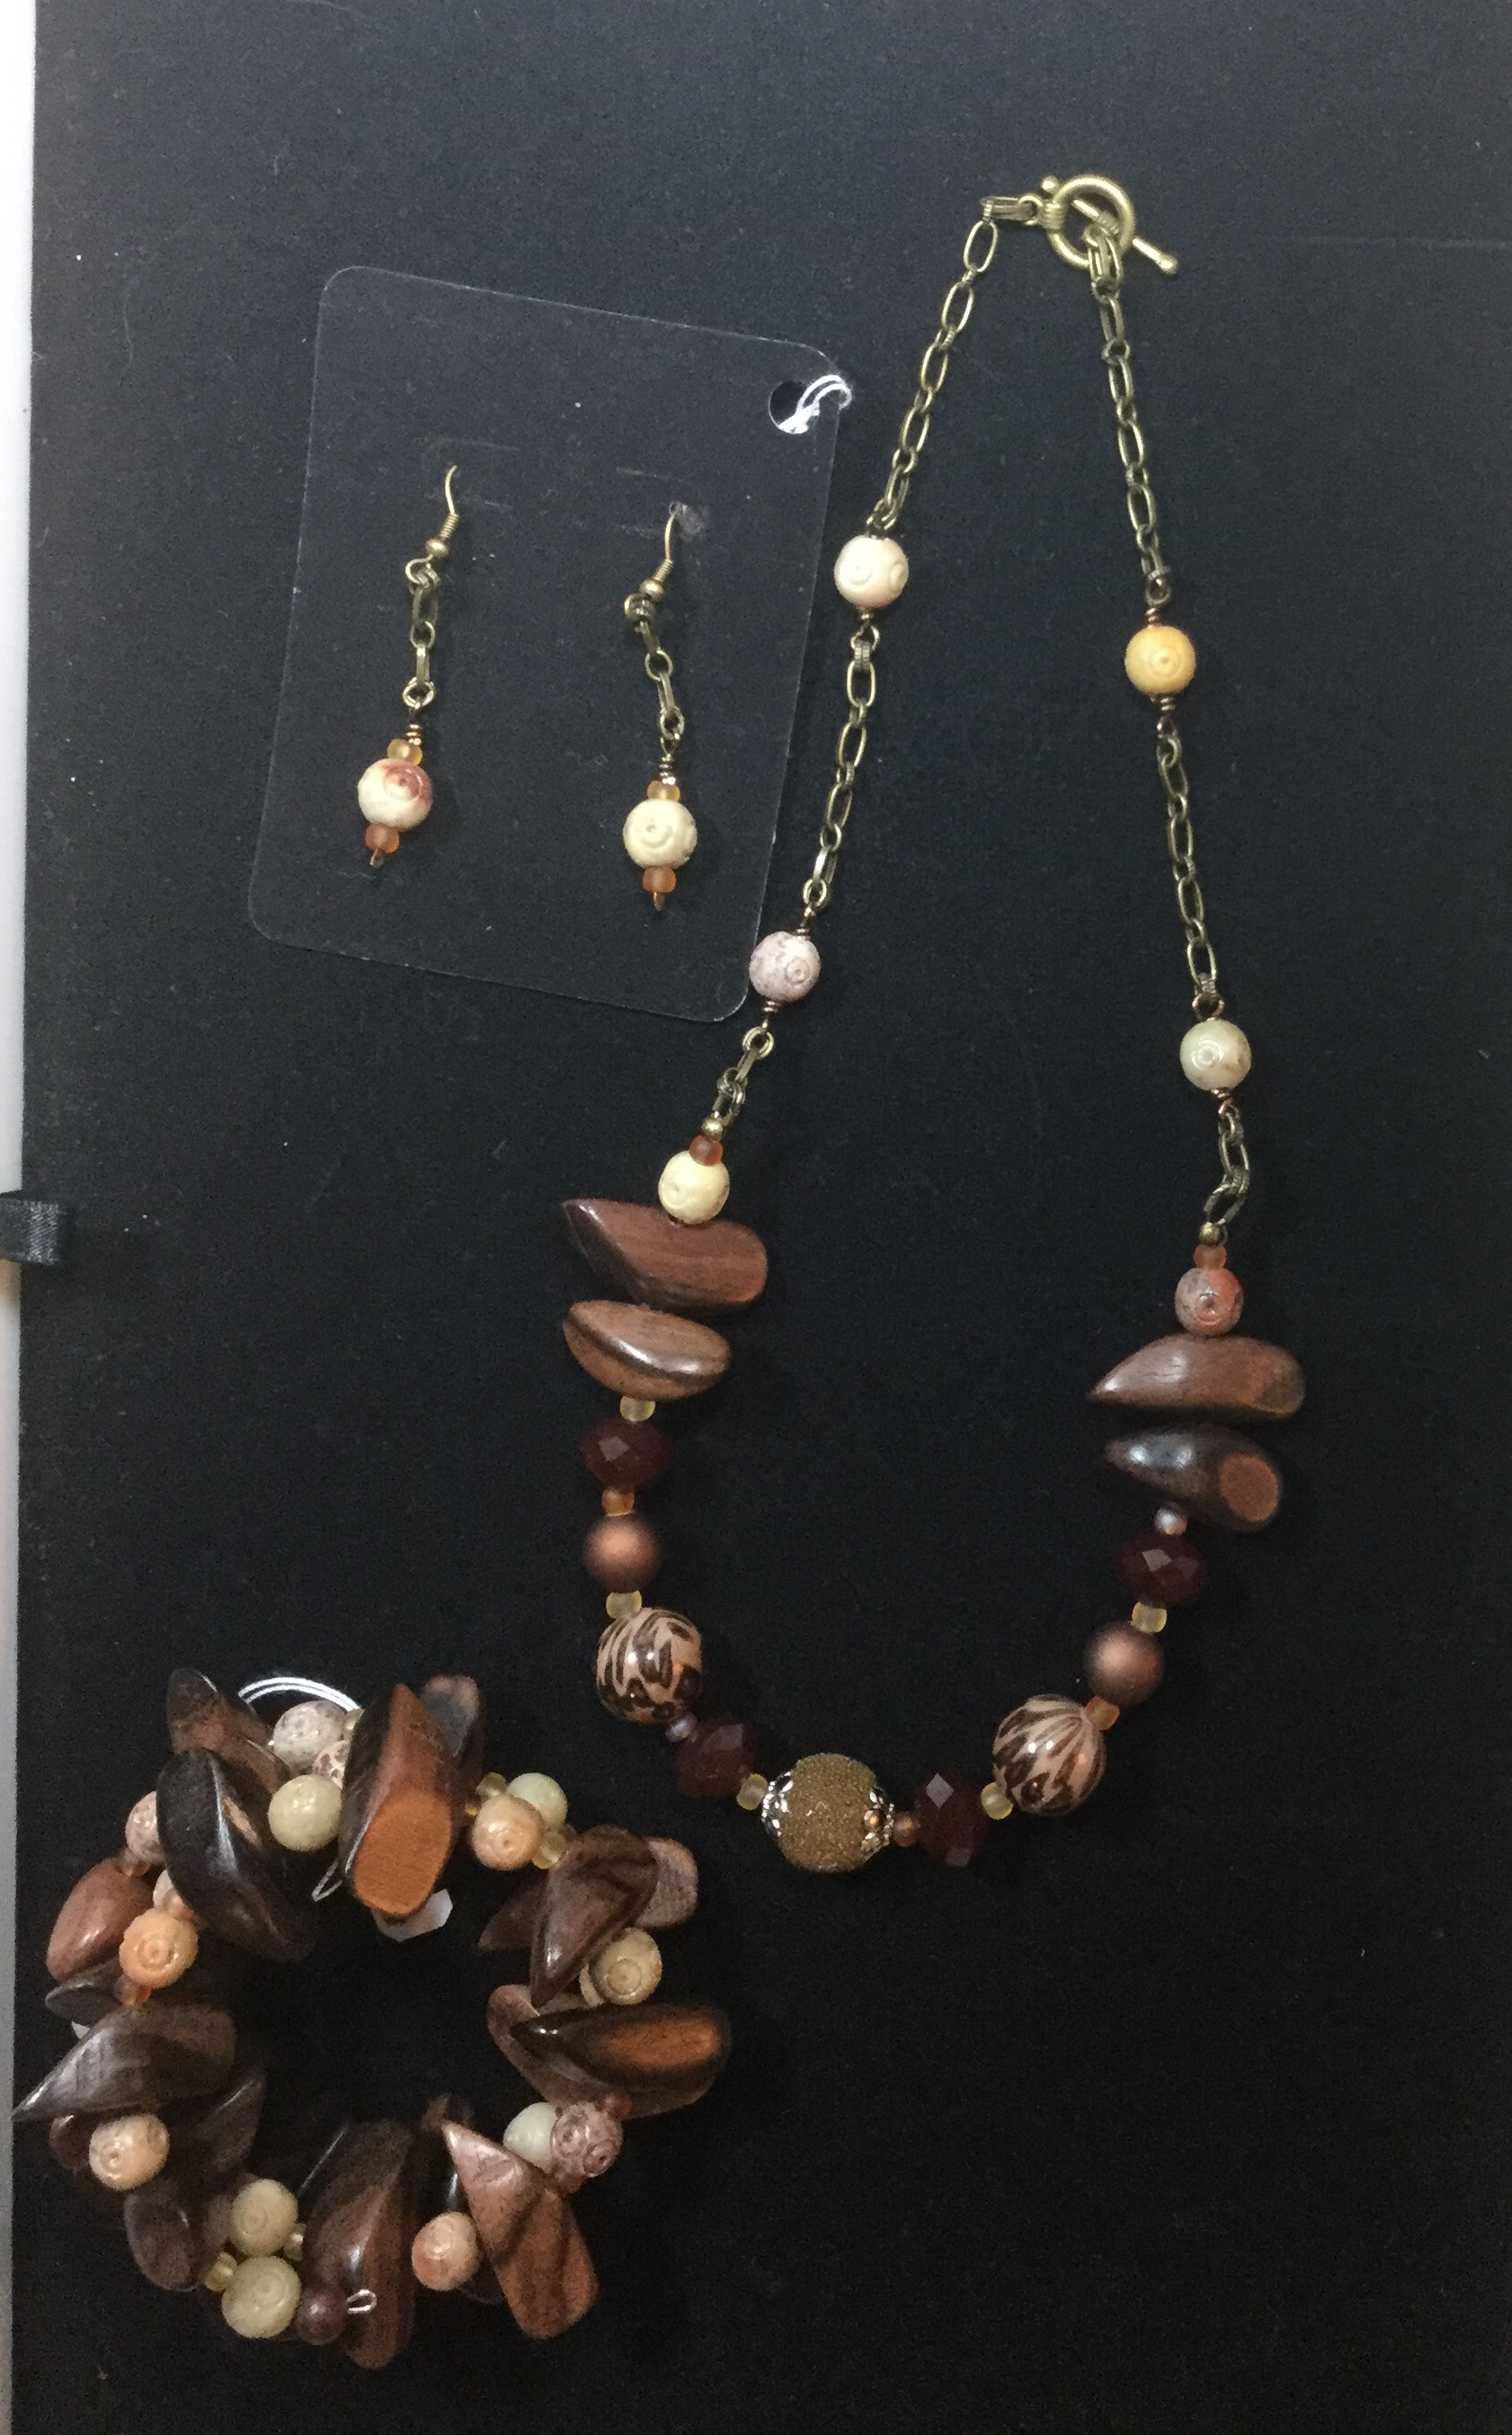 Wooden & Stone Bead Jewelry – Sell Separately or as a Set?